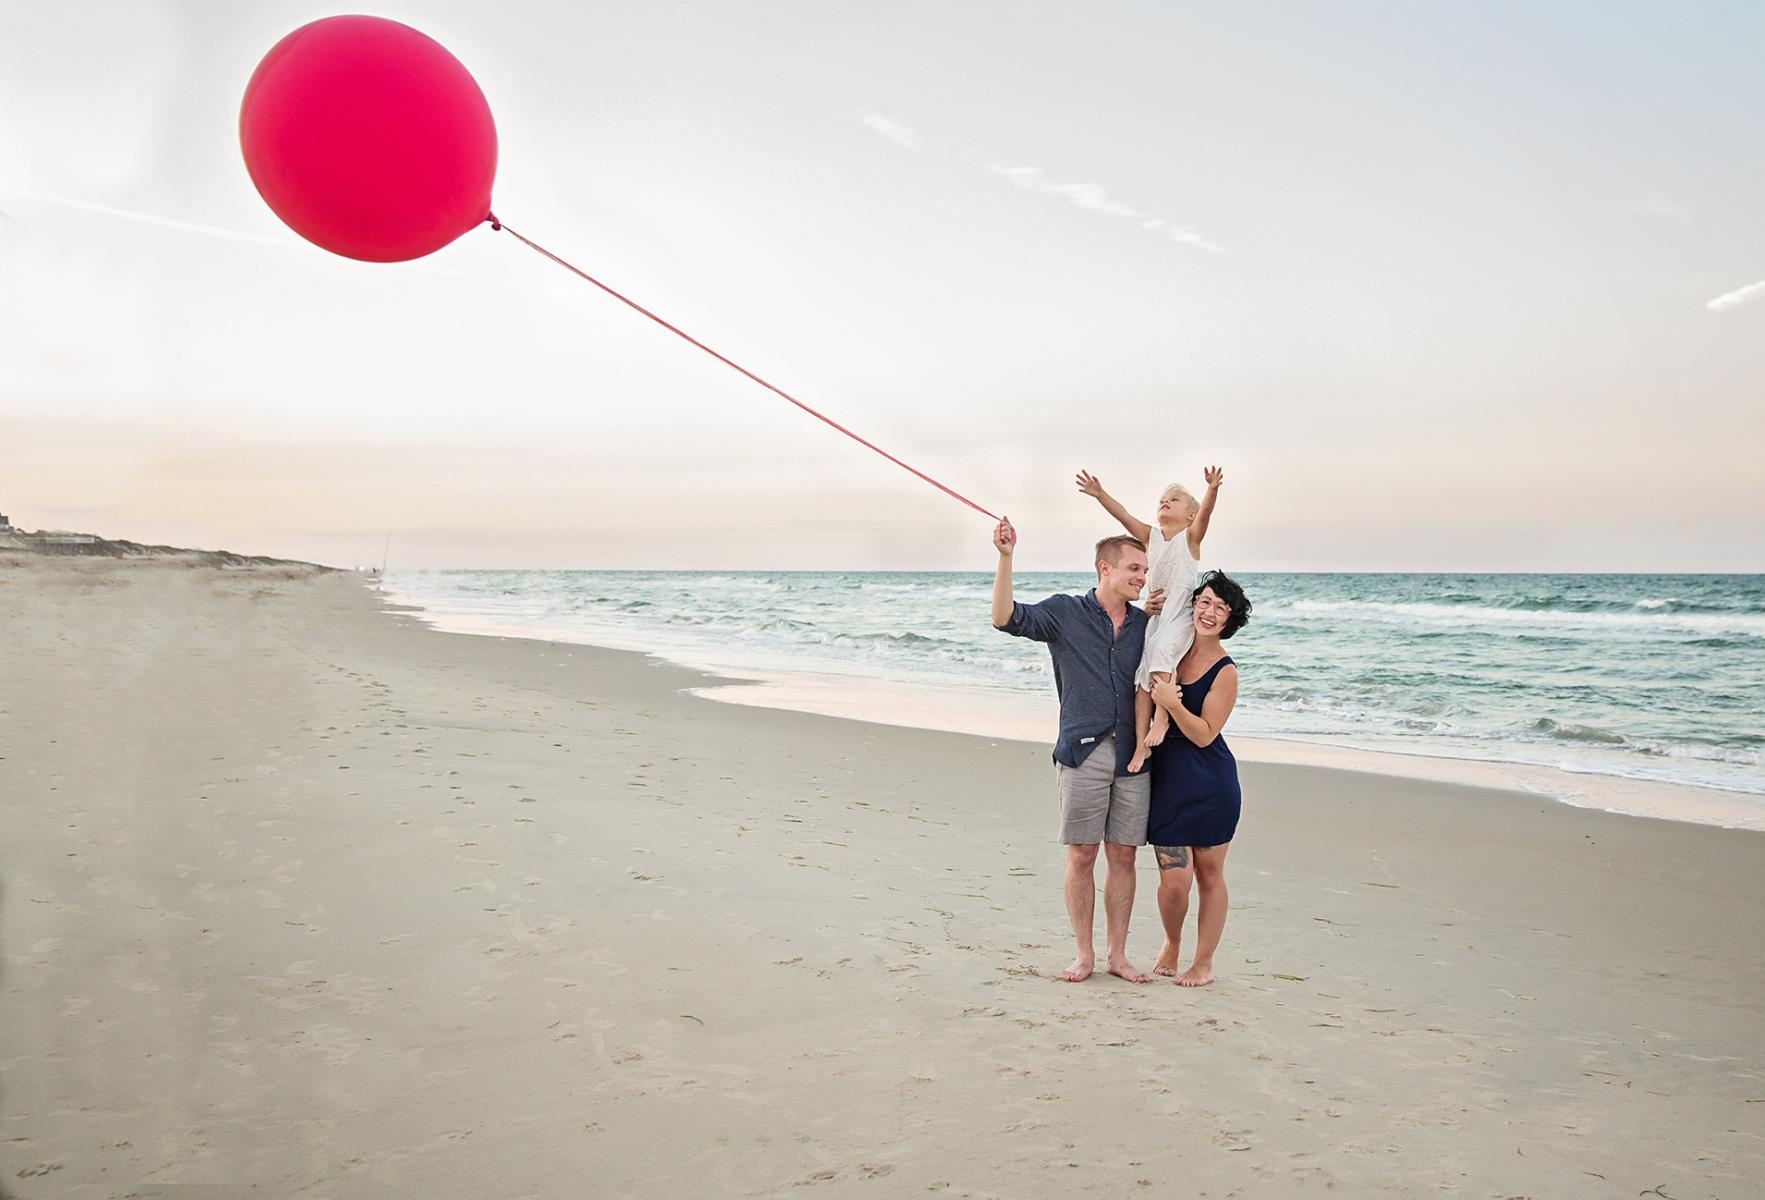 Family of 3 on beach with red balloon in Outer Banks NC